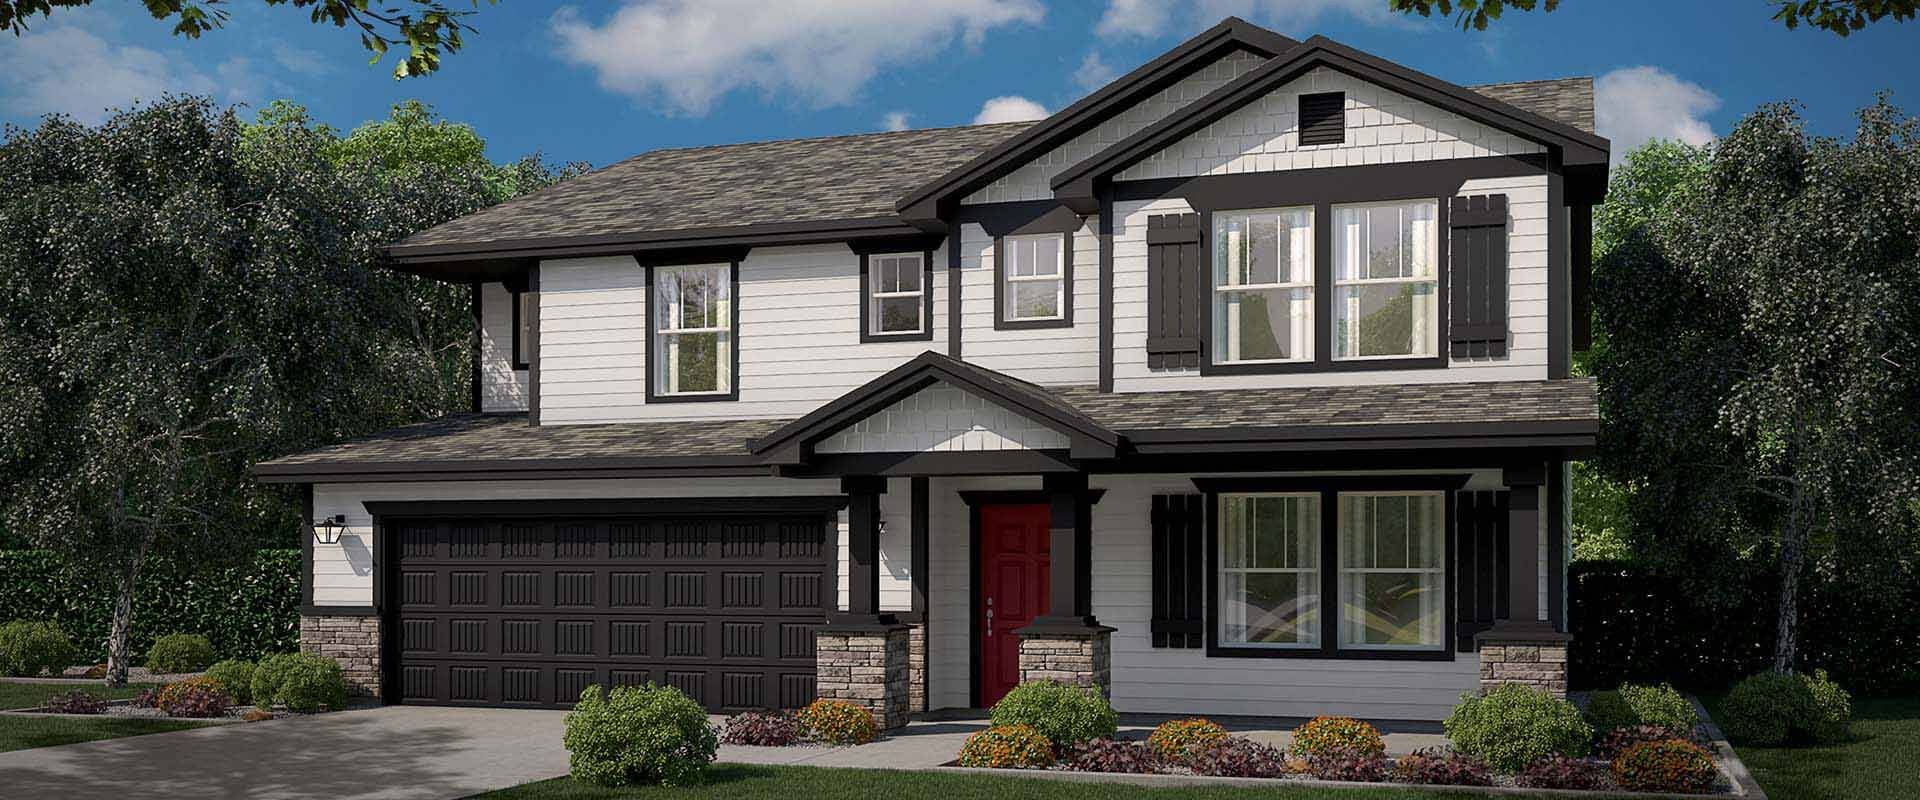 Spruce-Craftsman-new-homes-boise-idaho-hubble-homes.jpg